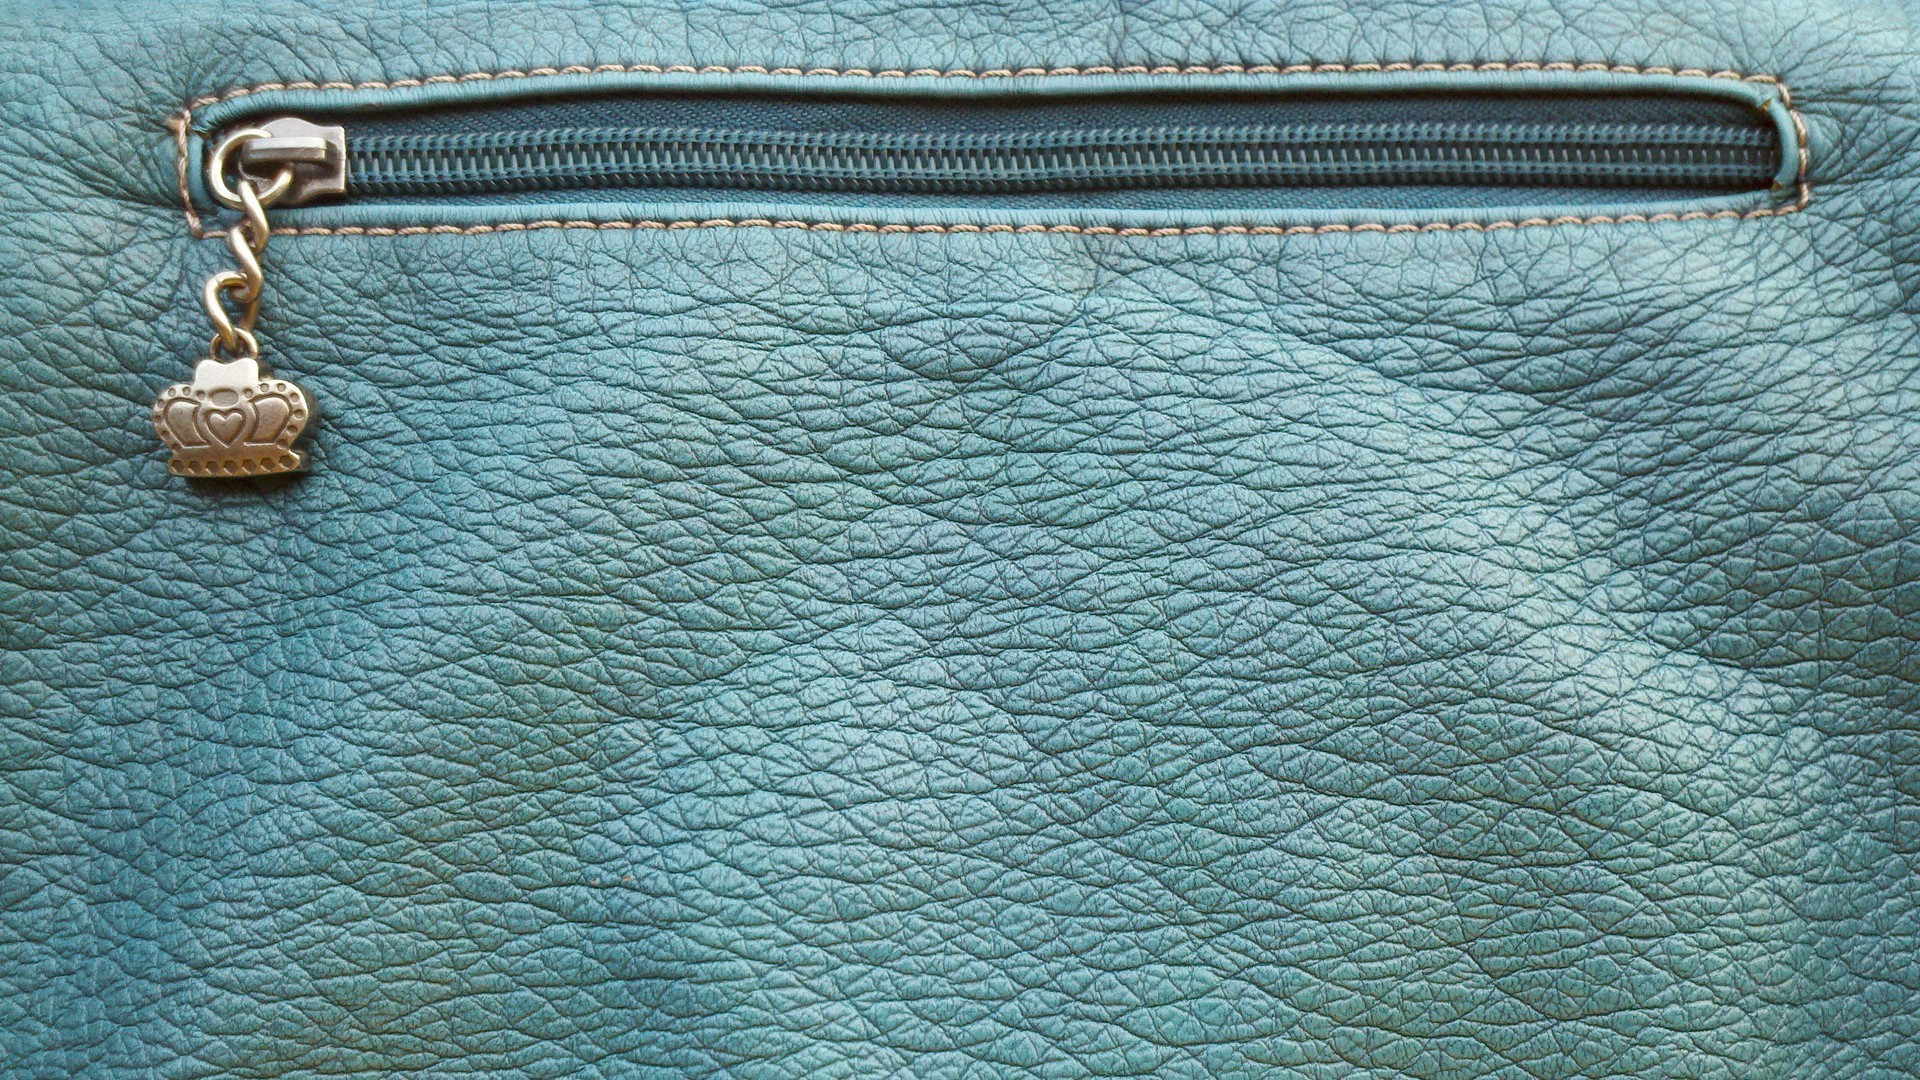 abstract leather zippers HD Wallpaper